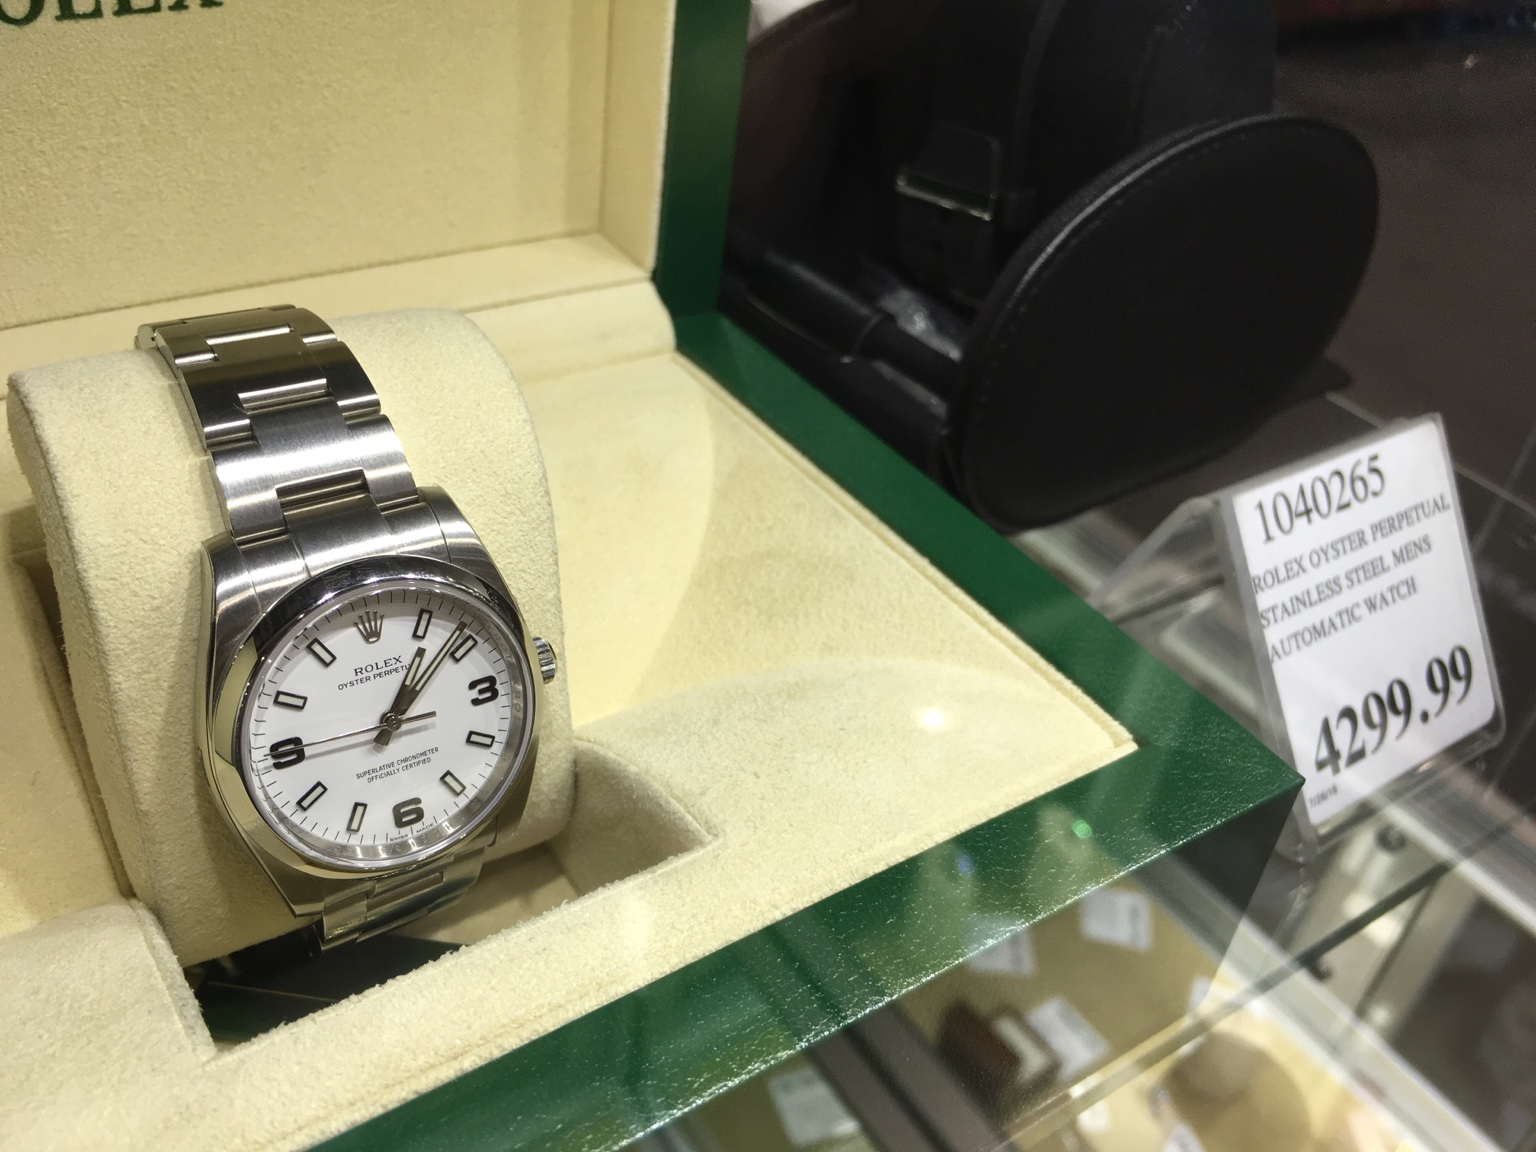 rolex at costco page 33 costco anchorage 5 aug 2016